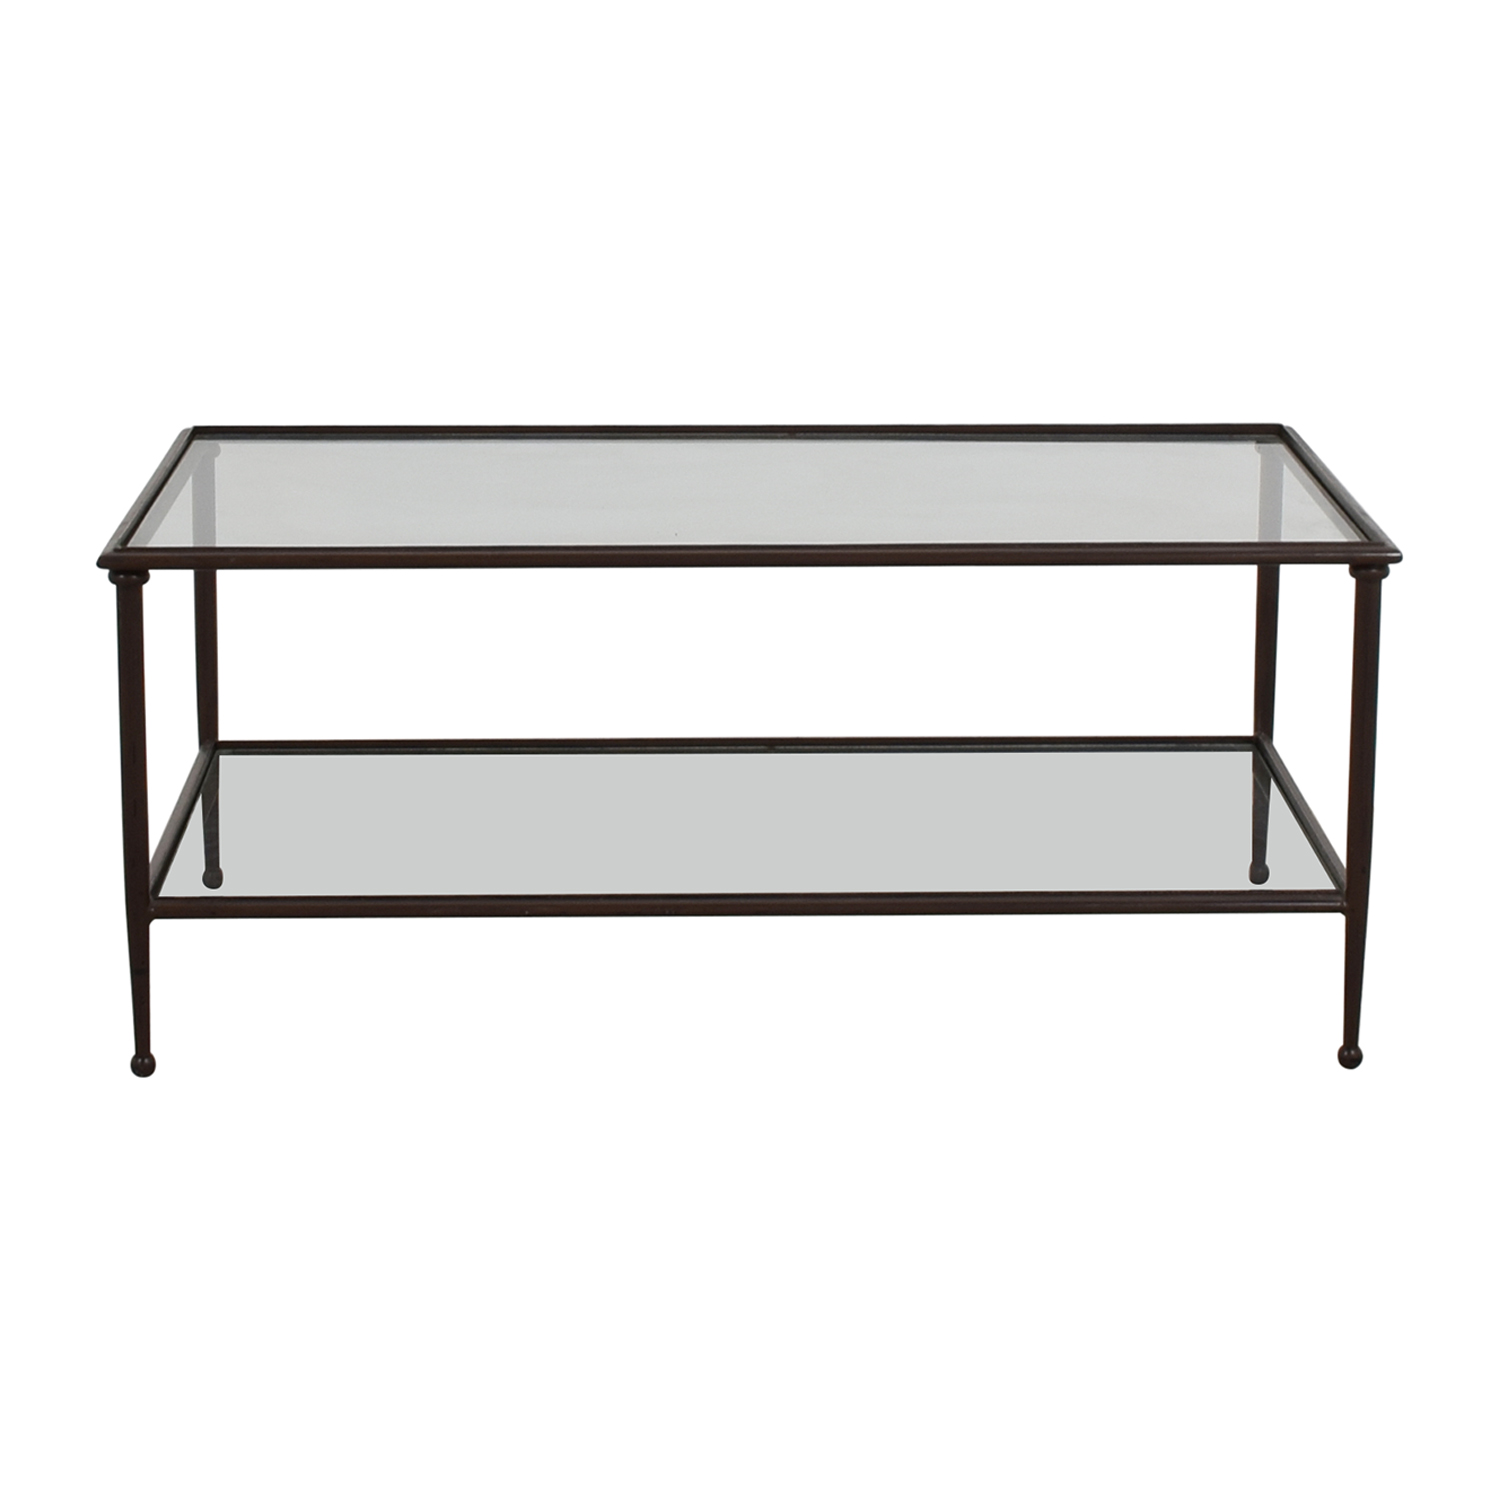 Crate & Barrel Glass & Metal Coffee Table / Tables